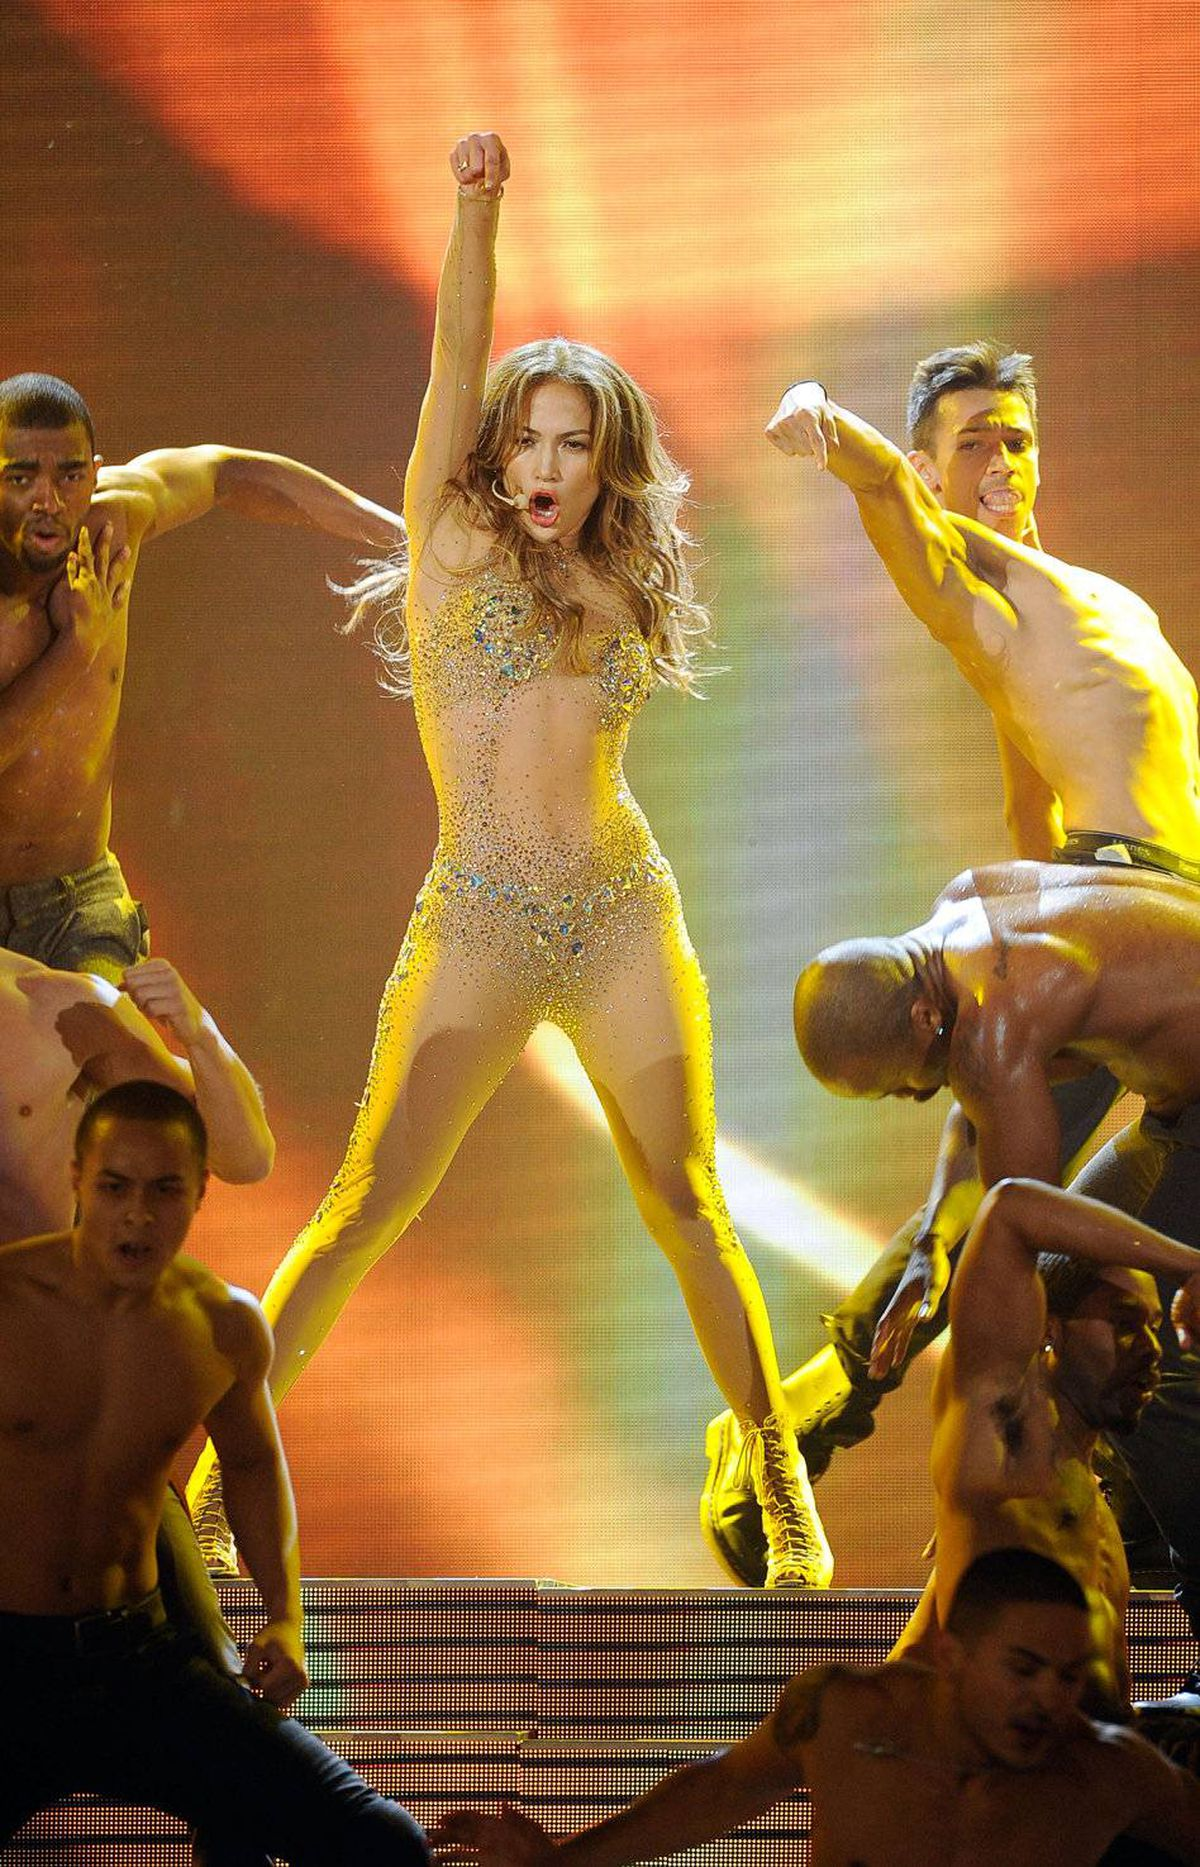 Singer Jennifer Lopez performs onstage at the 2011 American Music Awards held at Nokia Theatre L.A. LIVE on November 20, 2011 in Los Angeles, California.